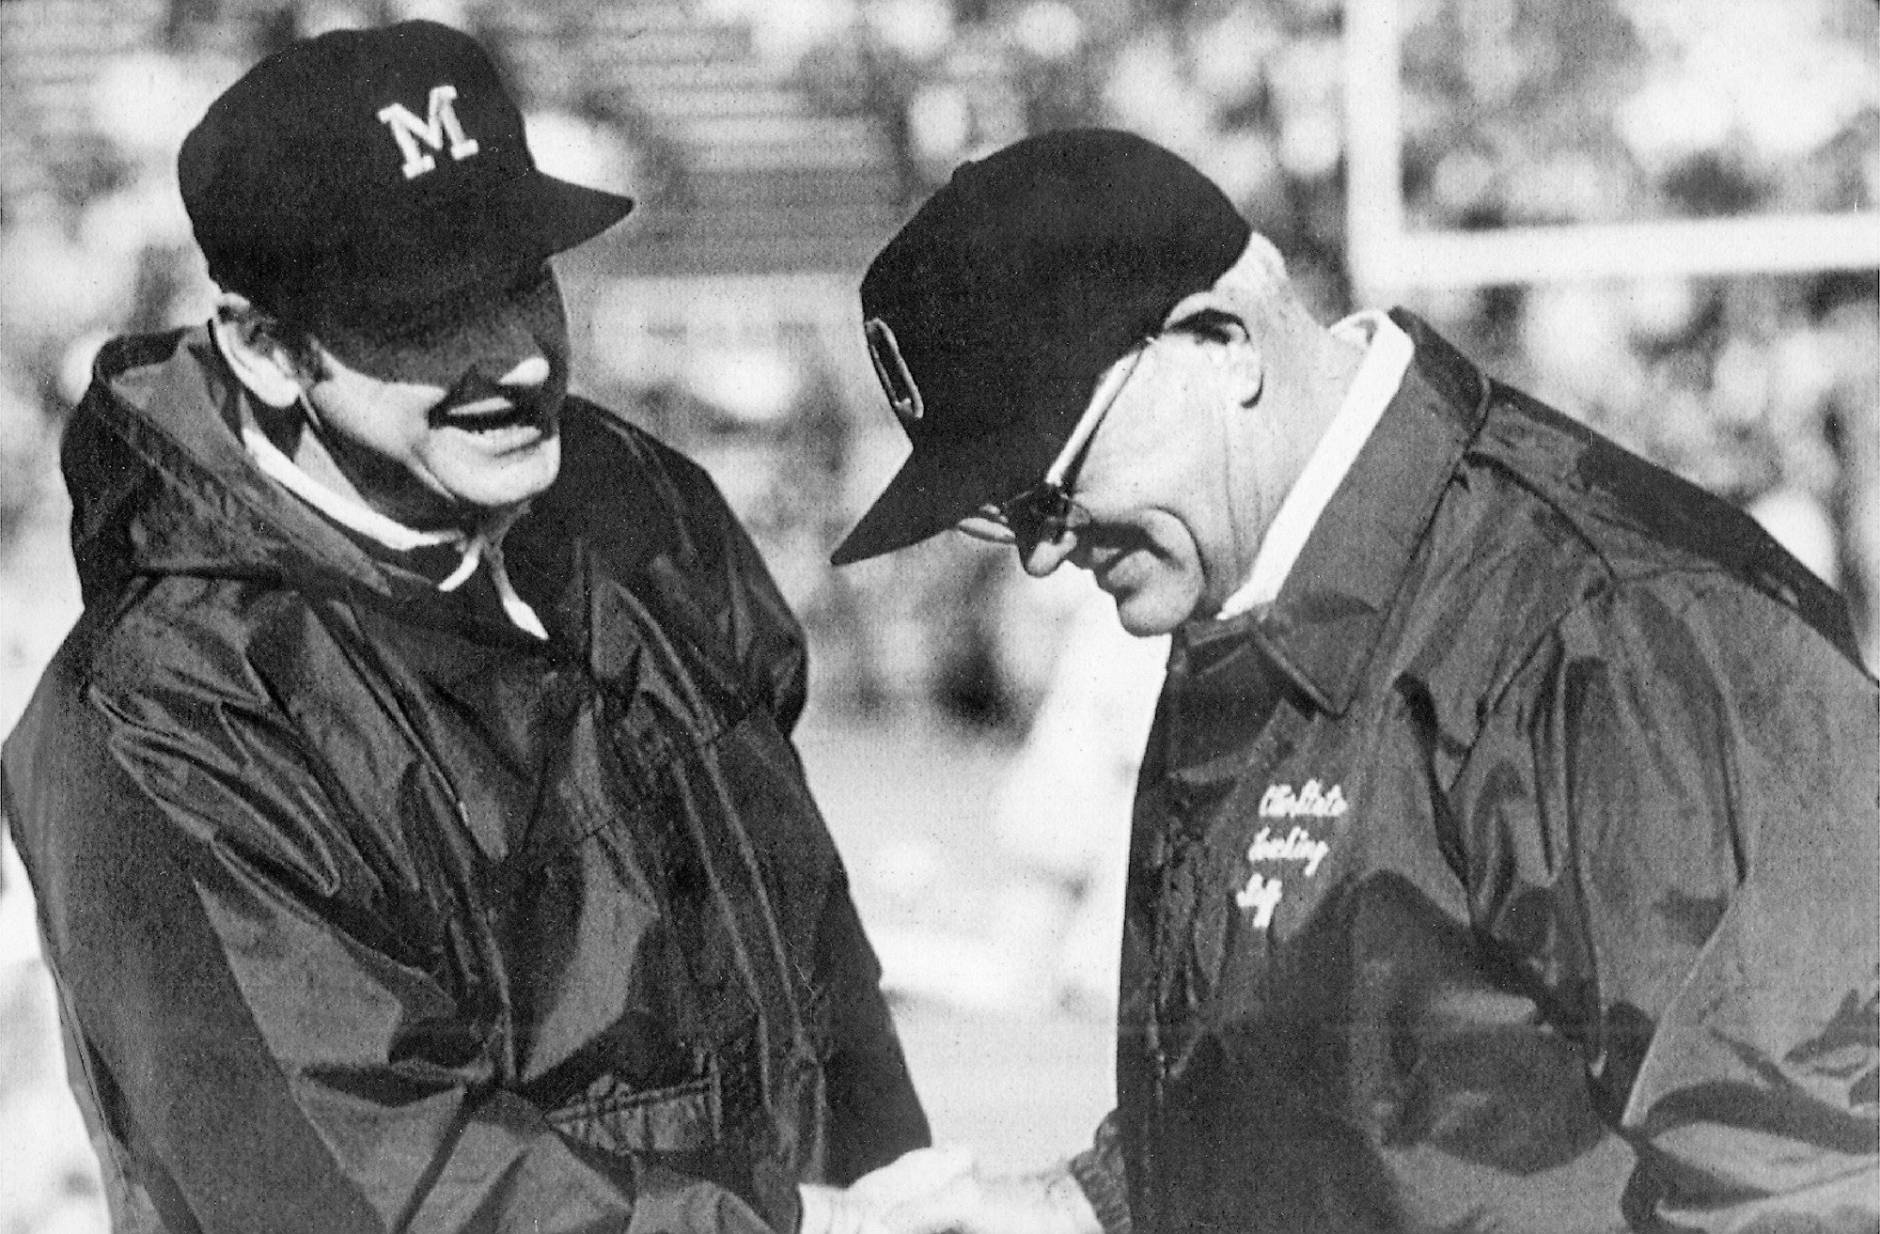 FILE - In this file photo, date and location not known, Michigan coach Bo Schembechler, left, meets with Ohio State coach Woody Hayes before an NCAA college football game. The story of the Ohio State-Michigan rivalry will always best be told through the tale of Woody and Bo. For 10 years, Woody Hayes' Buckeyes and Bo Schembechler's Wolverines reigned over the Big Ten and captivated the country. Teacher vs. pupil. Dear friends and fierce competitors, their legacies are intrinsically linked. (AP Photo, File)